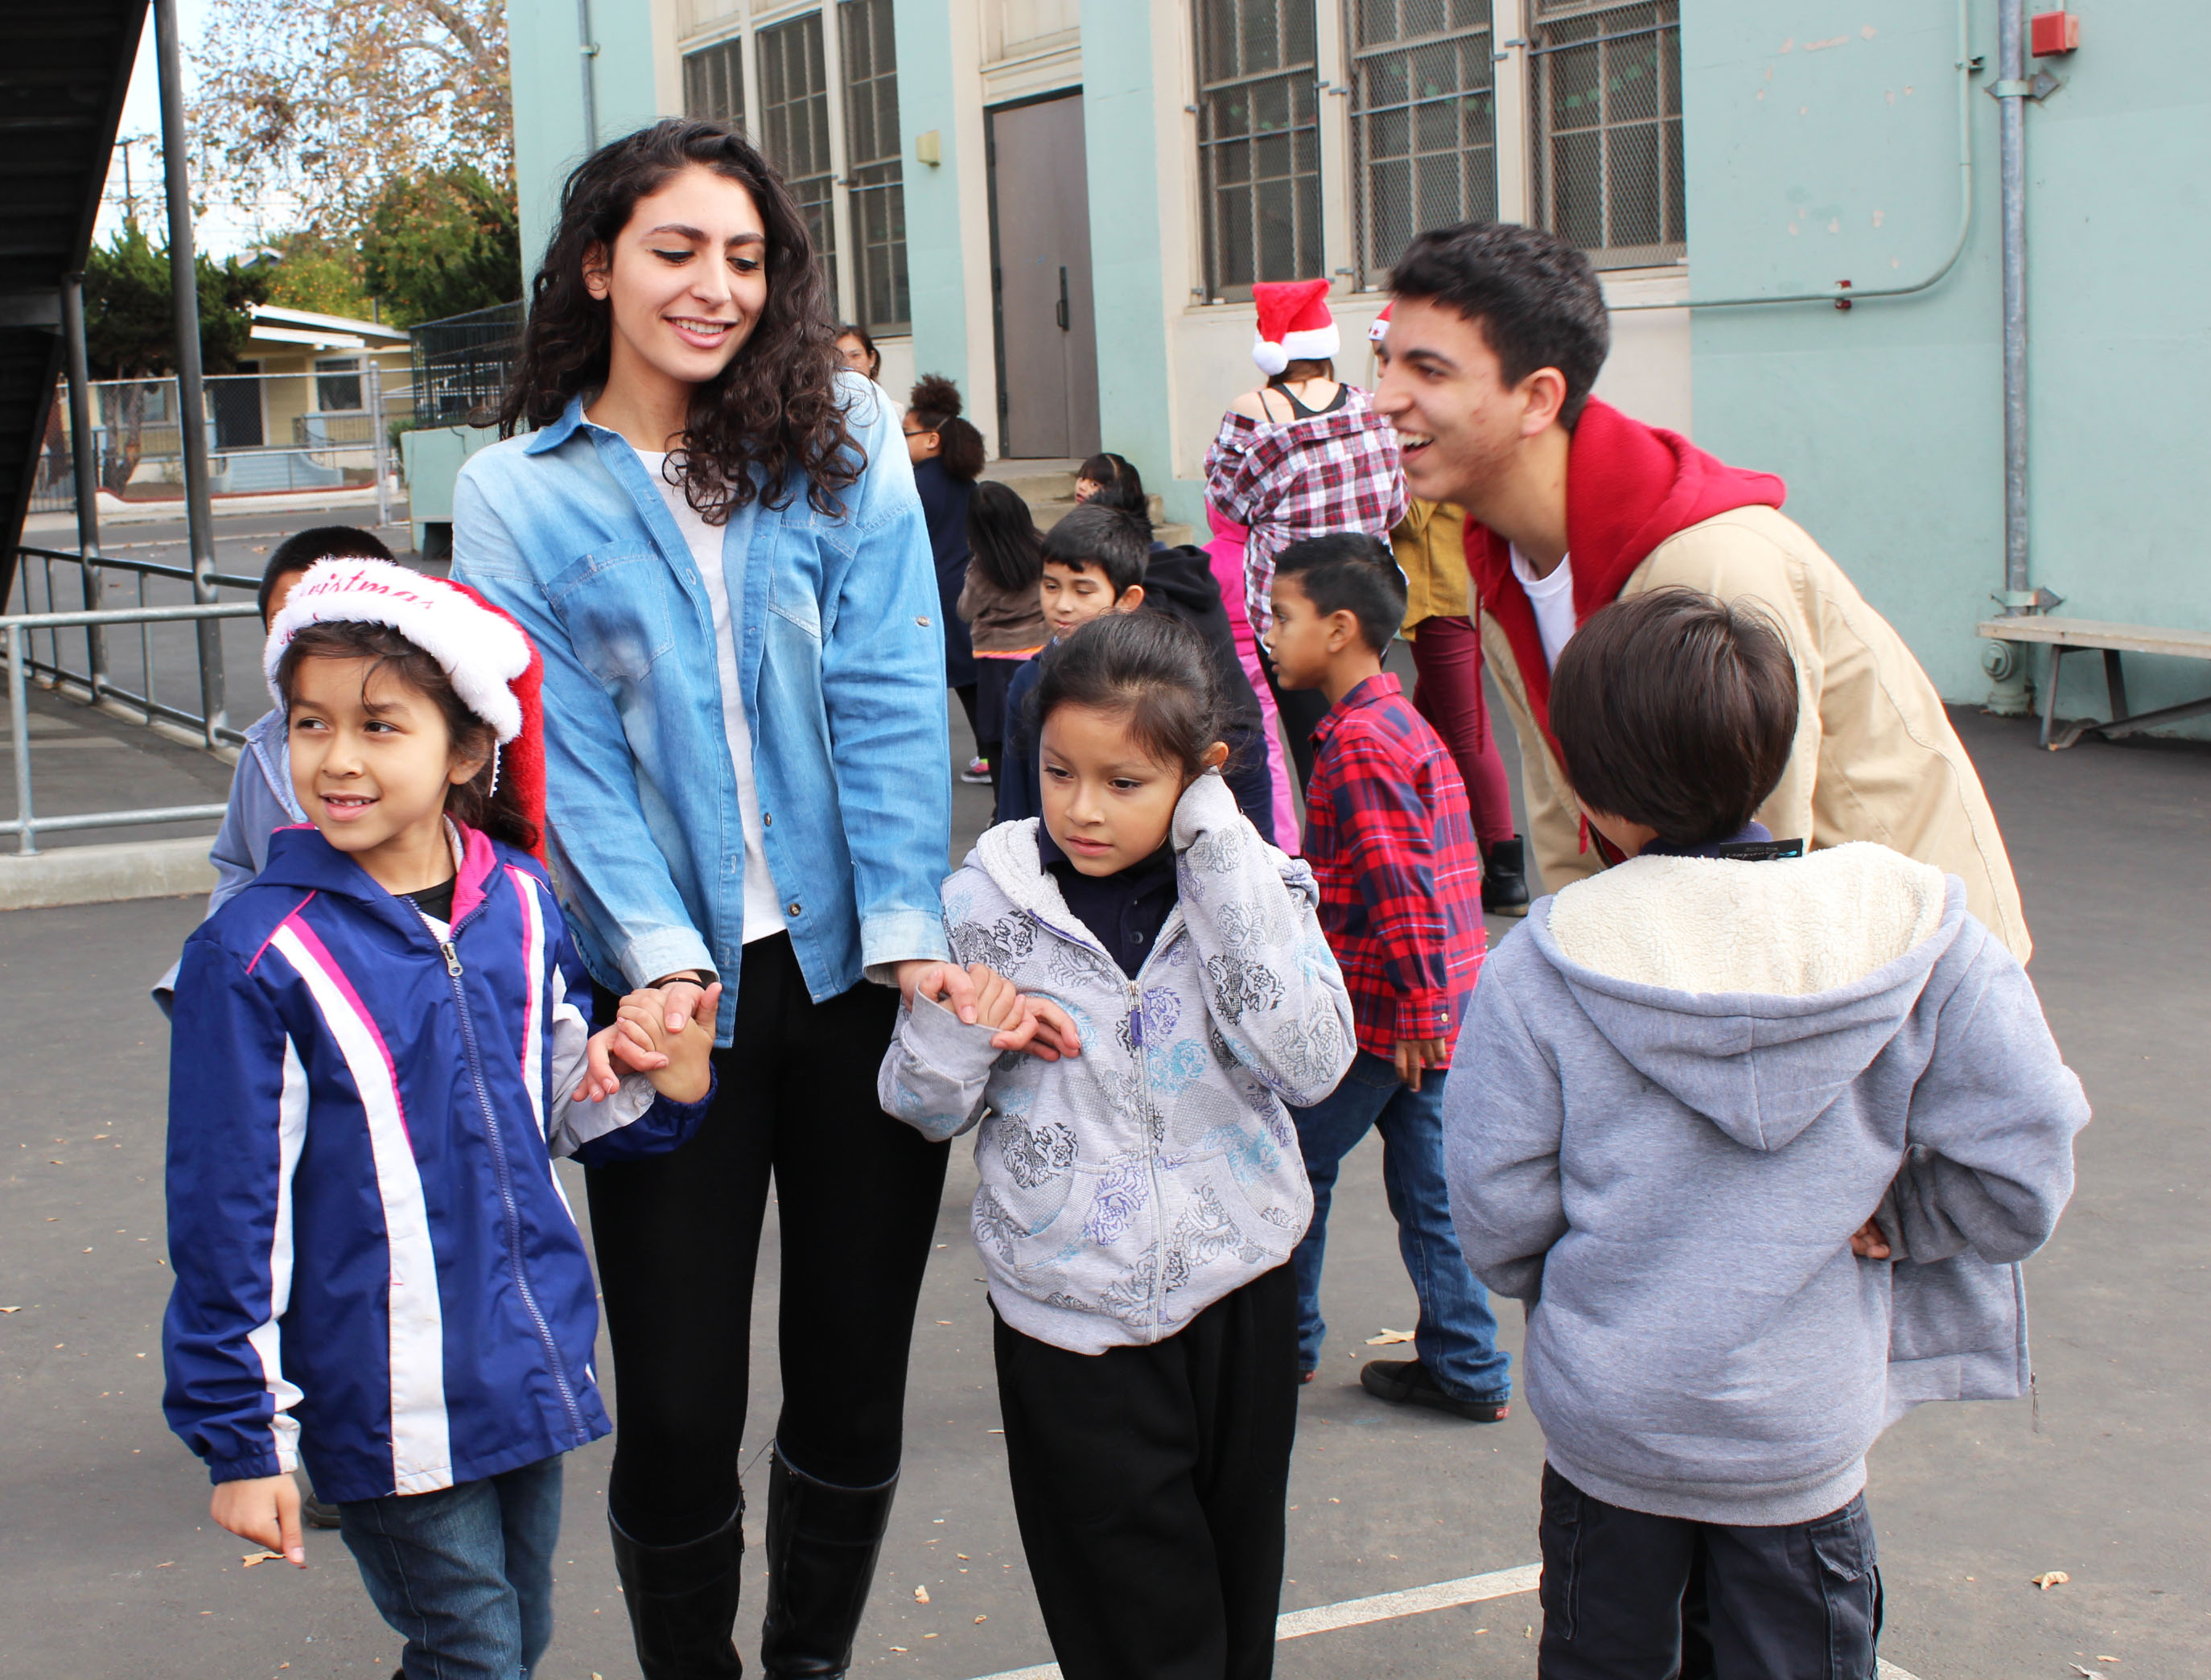 Senior Natasha Kashani spends quality time with Albion students from the class to which she was assigned.